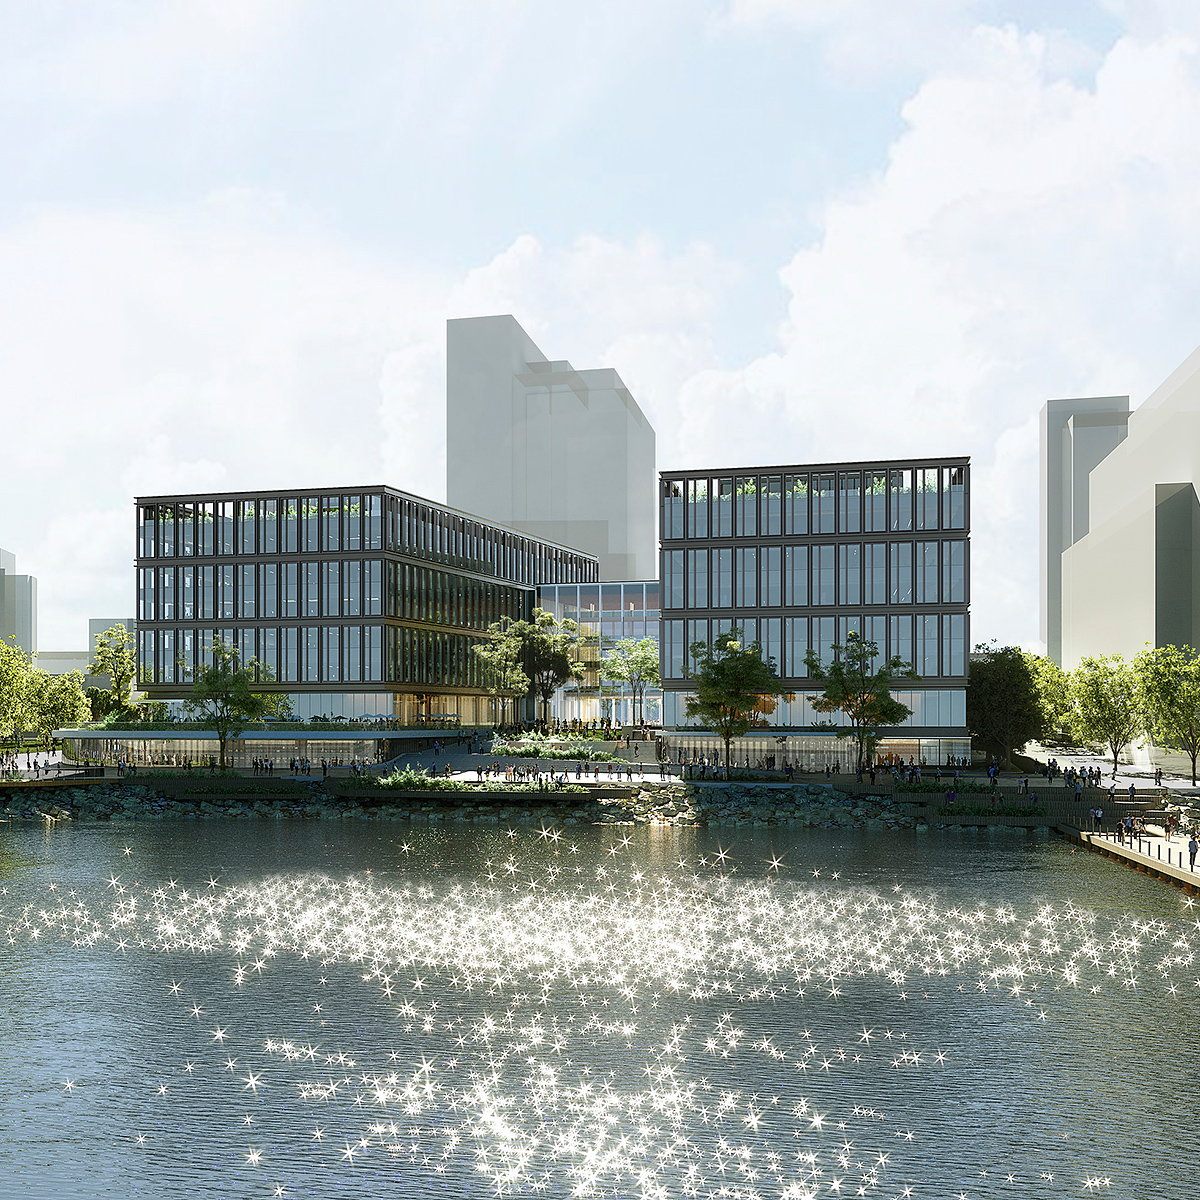 KPF Reveals Designs for T. Rowe Price HQ